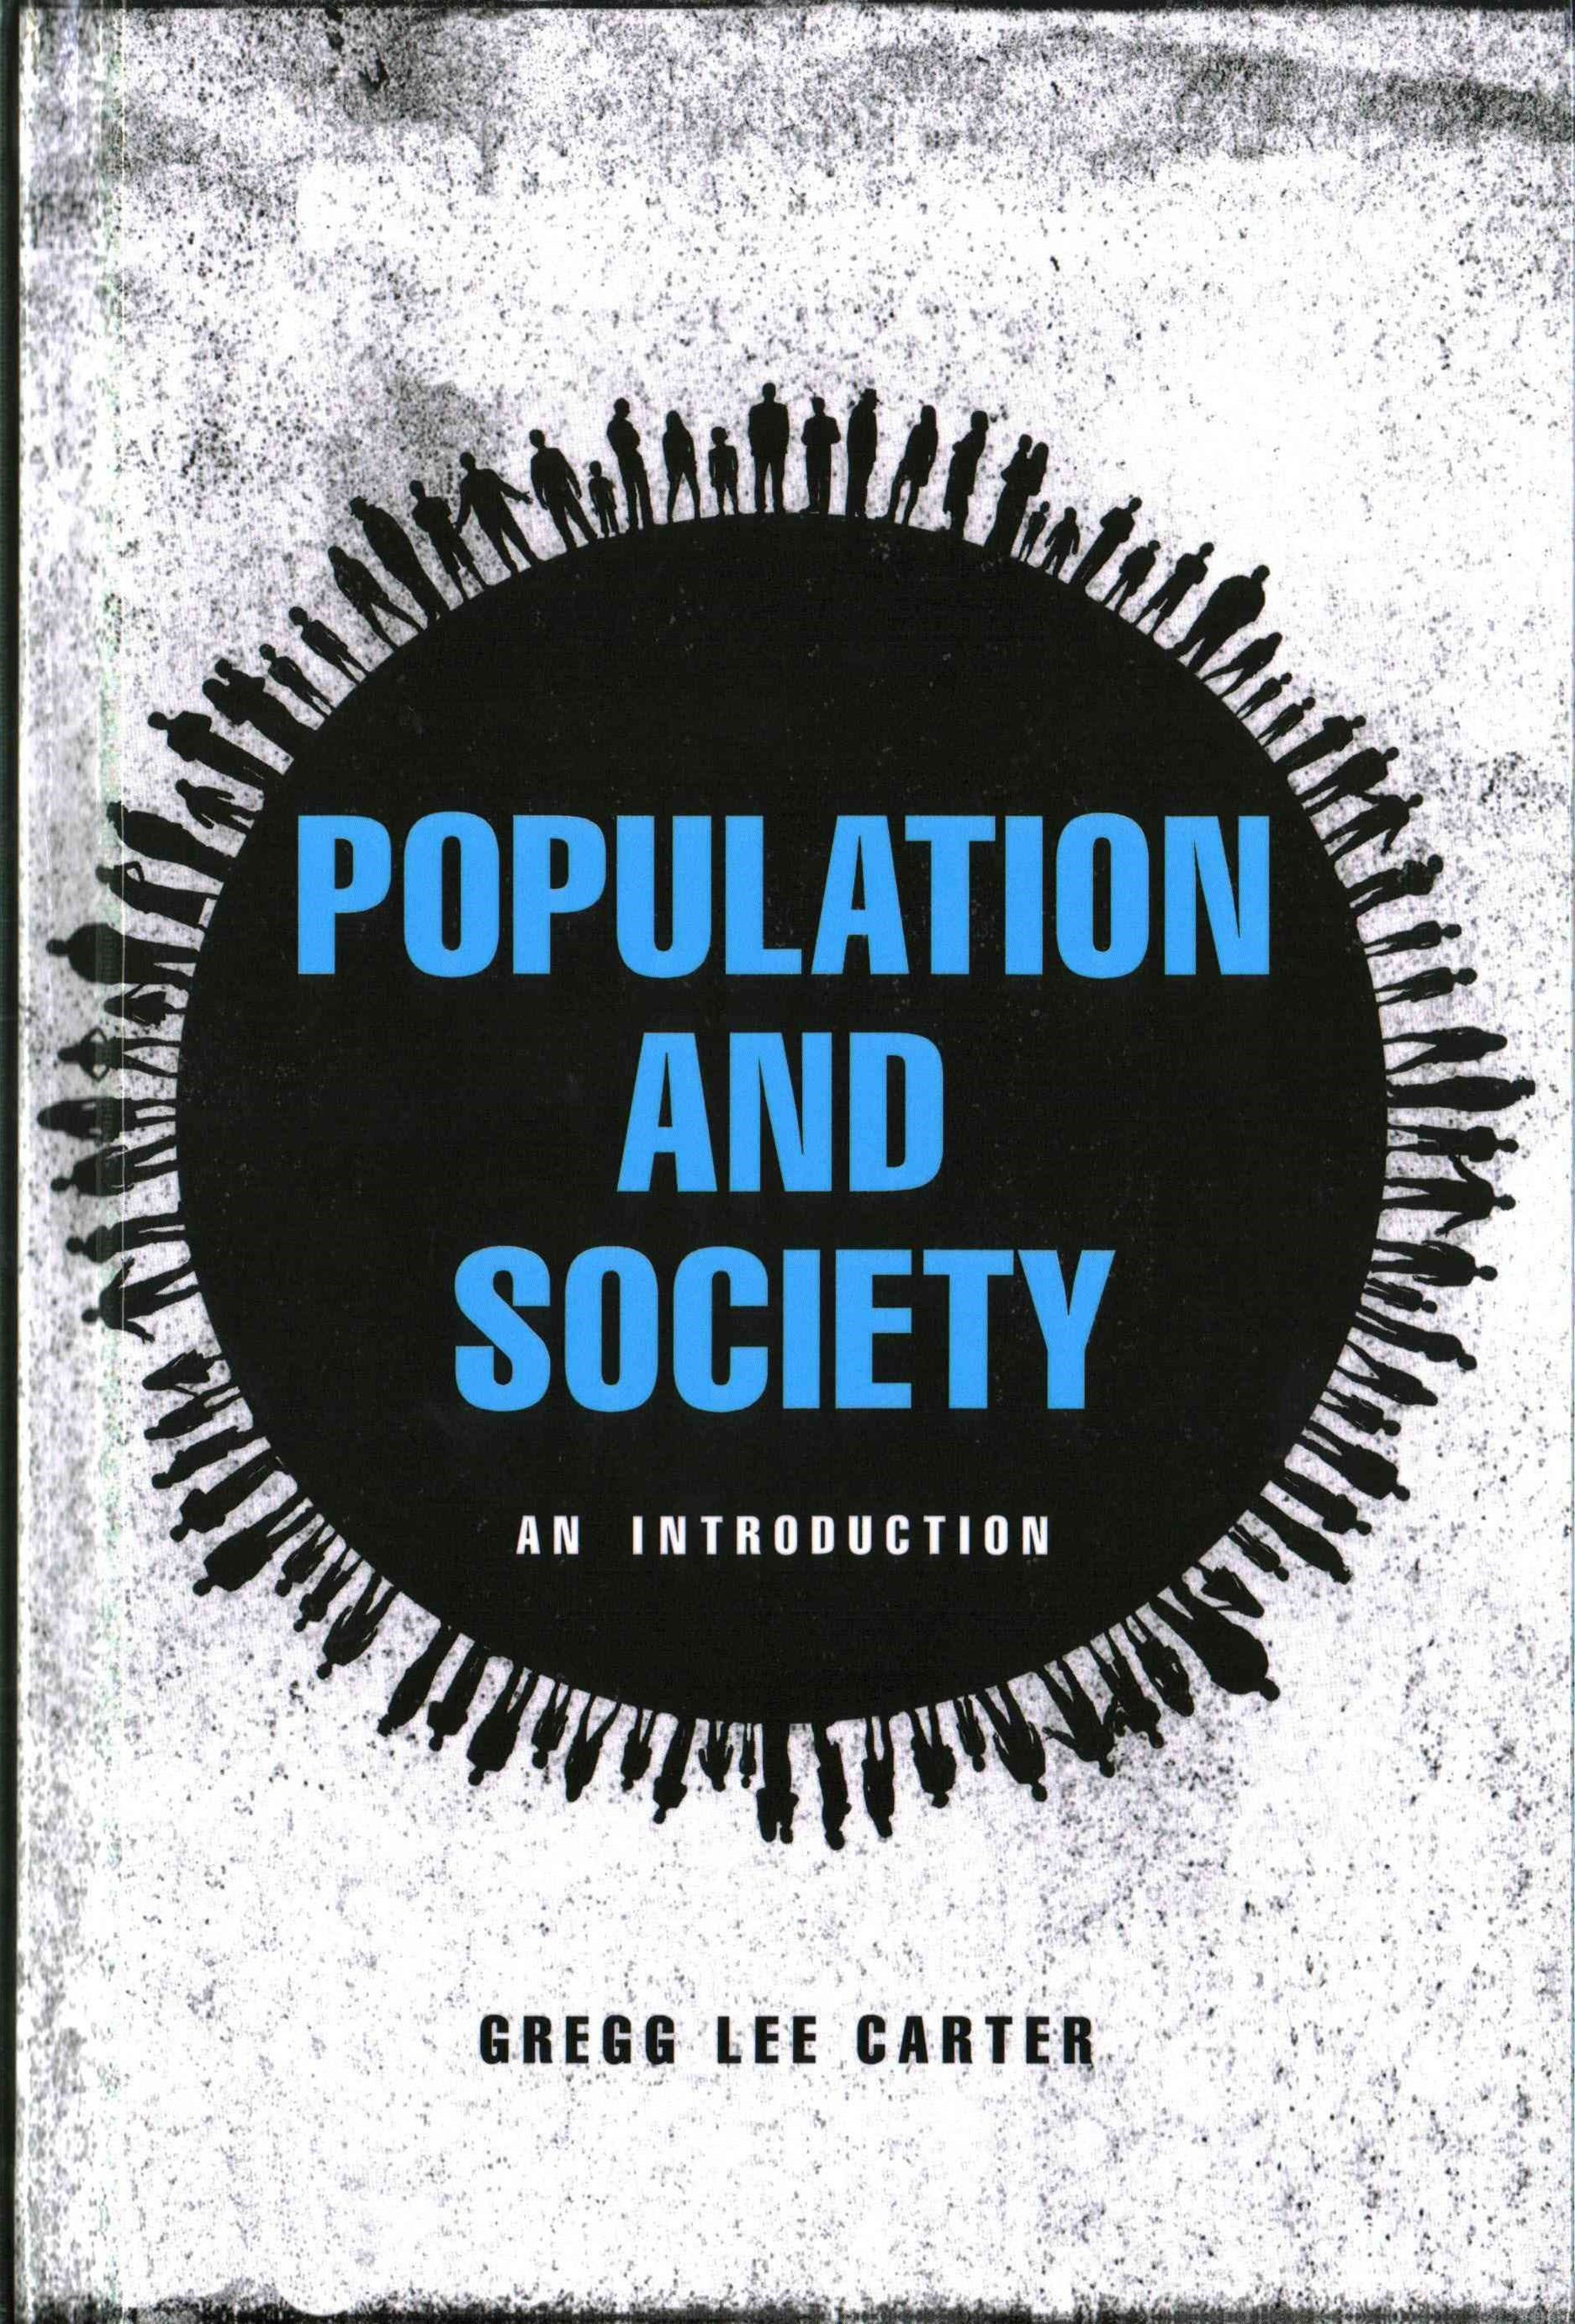 Population and Society - an Introduction